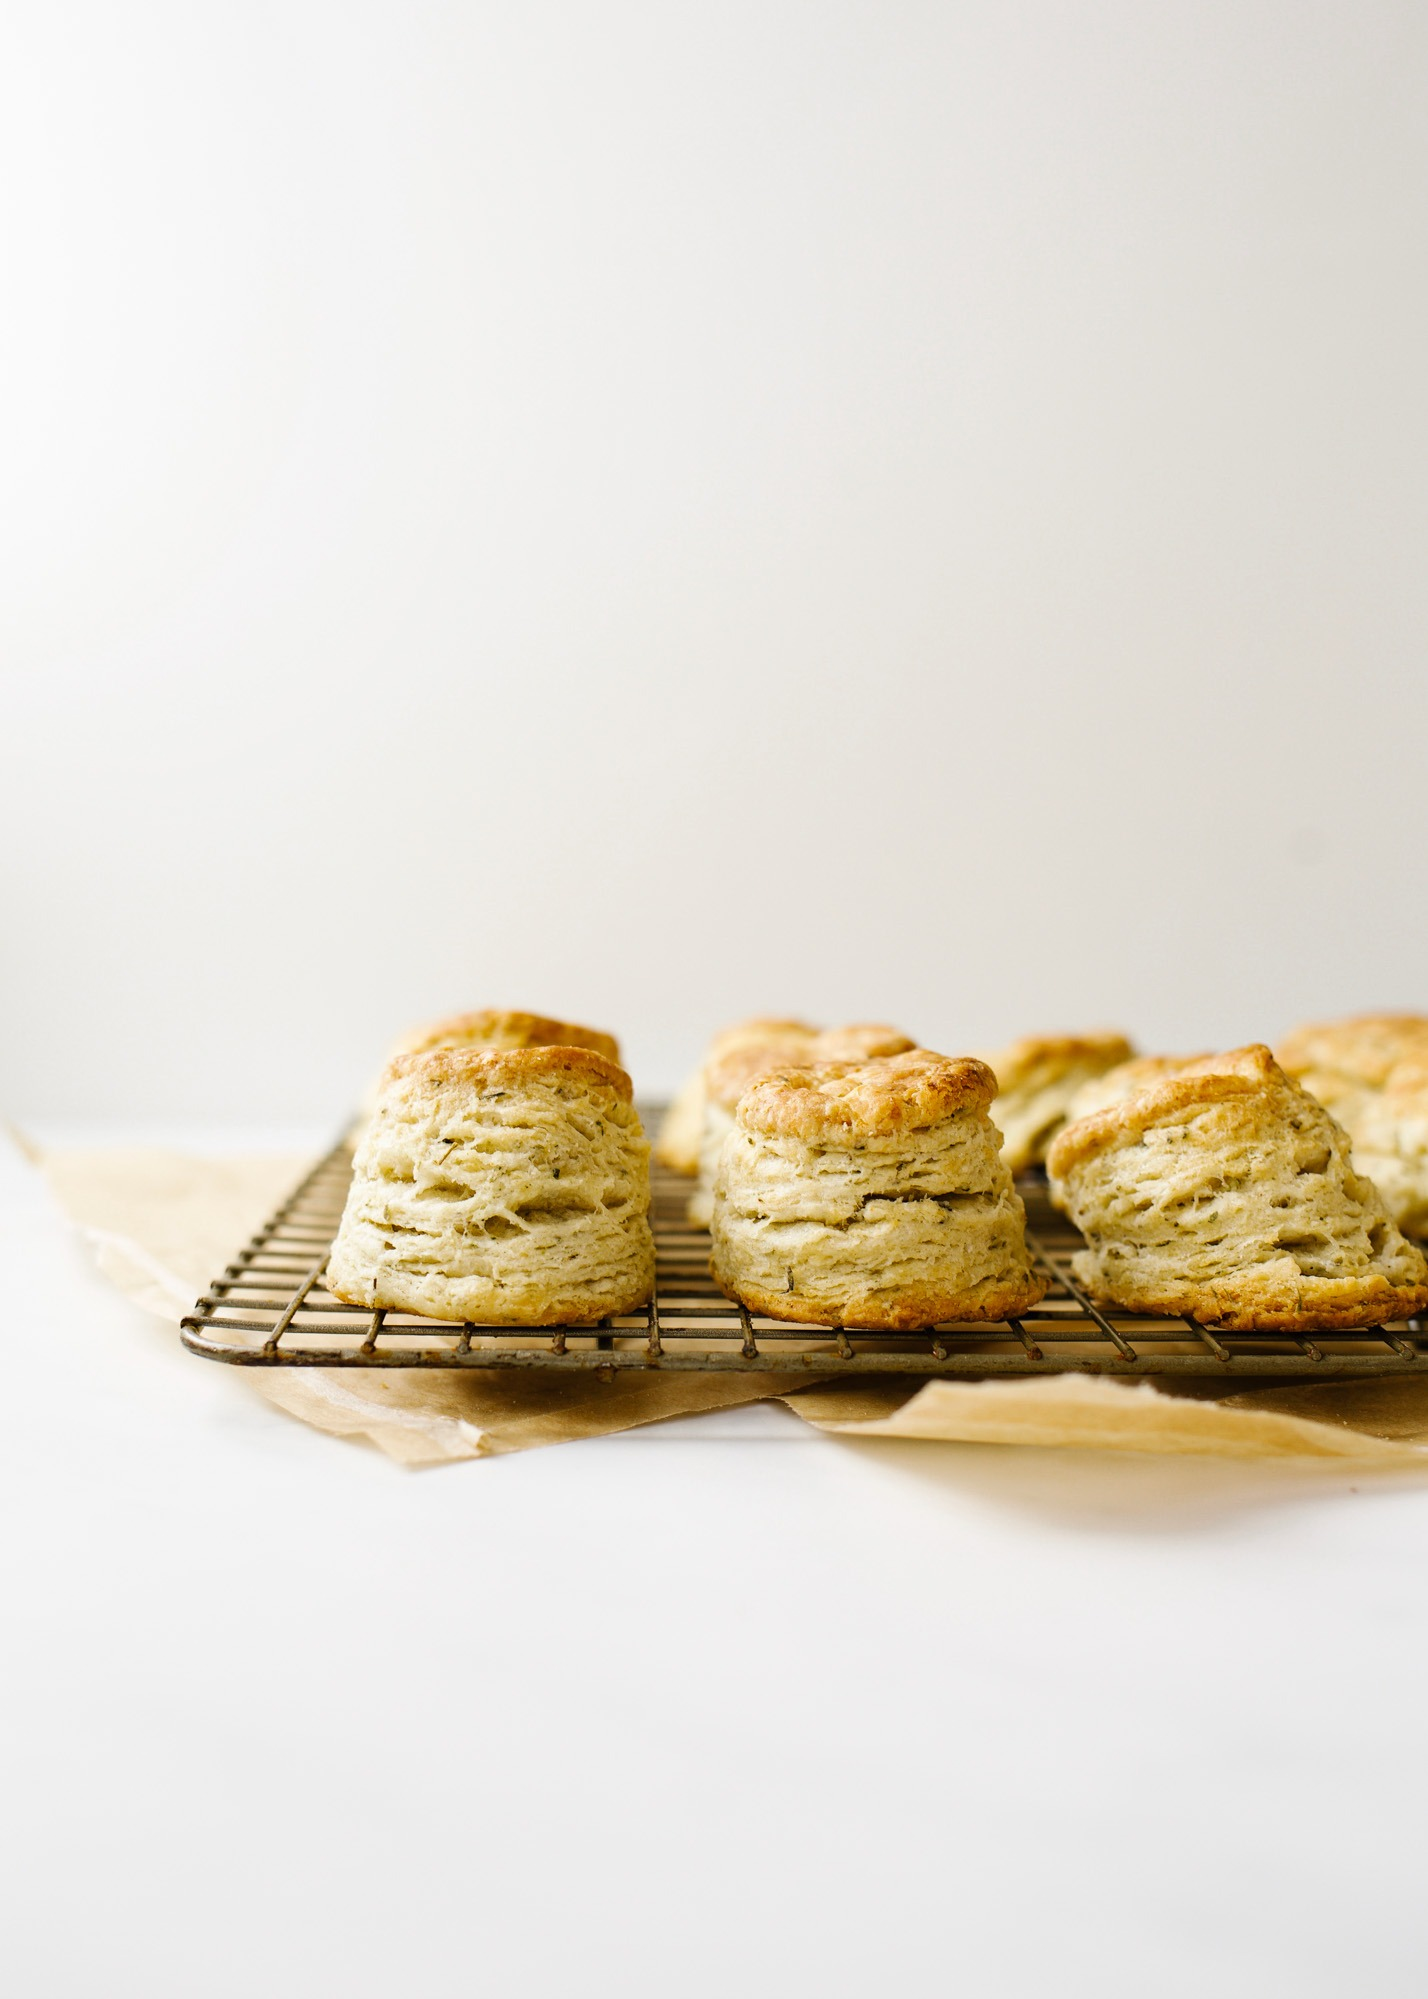 Mini Garlic Herb Biscuits by Wood and Spoon blog. These are bite-sized southern style biscuits layered with garlic, herbs, and loads of butter. These breakfast breads make a great side option for suppers but can also be used as a base for breakfast sandwiches and more! Learn how simple it is to make them on thewoodandspoon.com